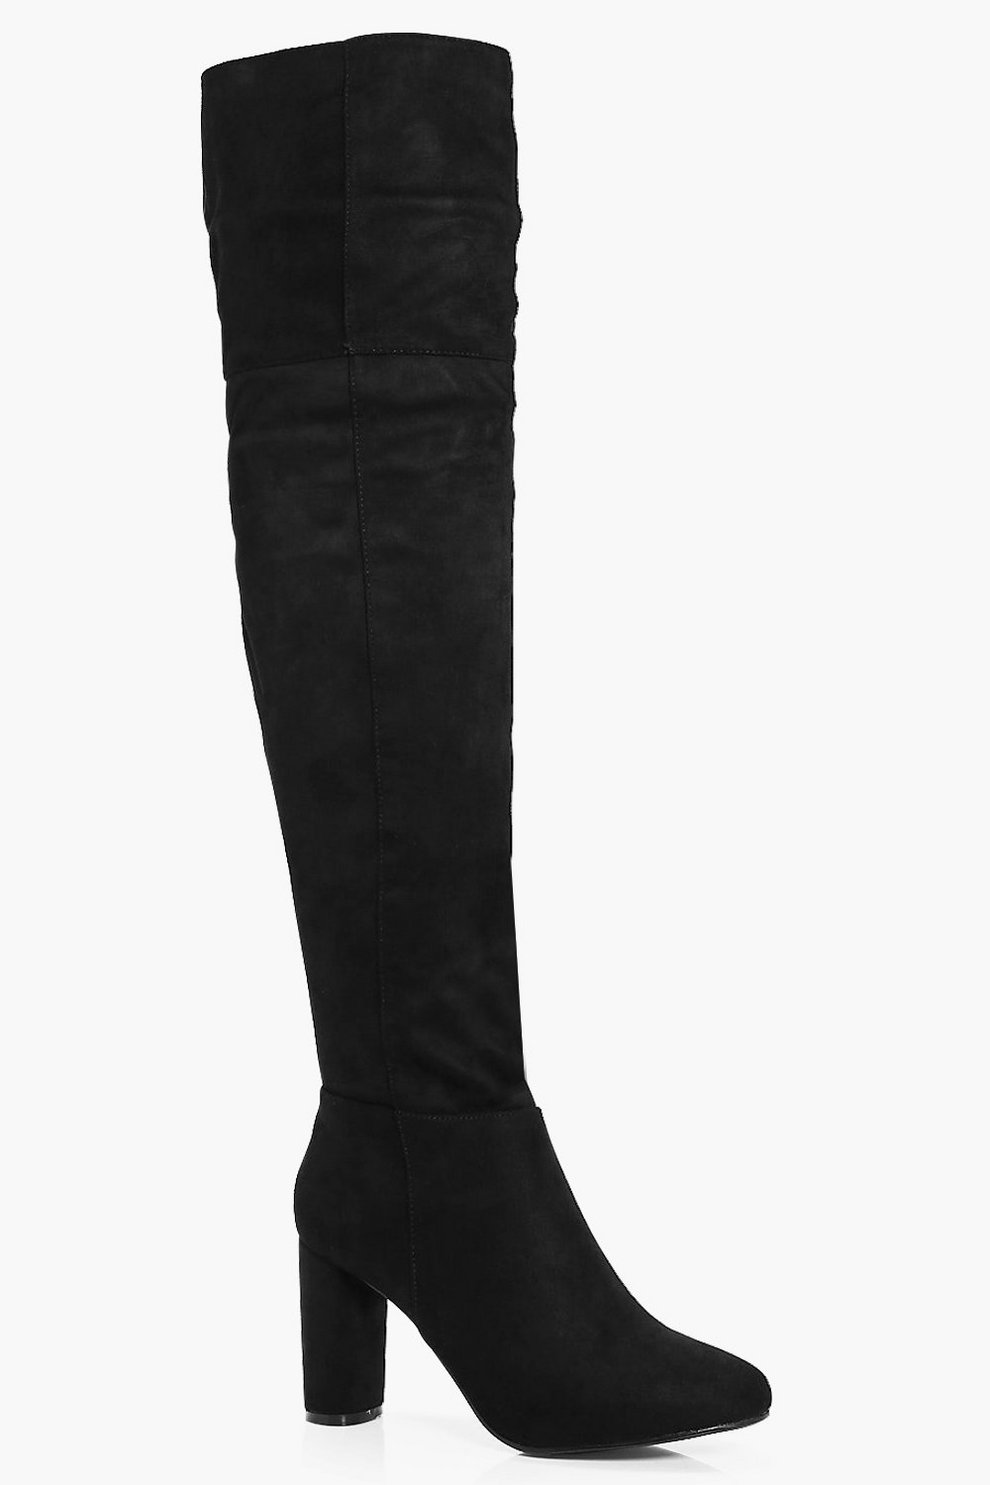 5d503288ba Darcey Block Heel Thigh High Boot | Boohoo